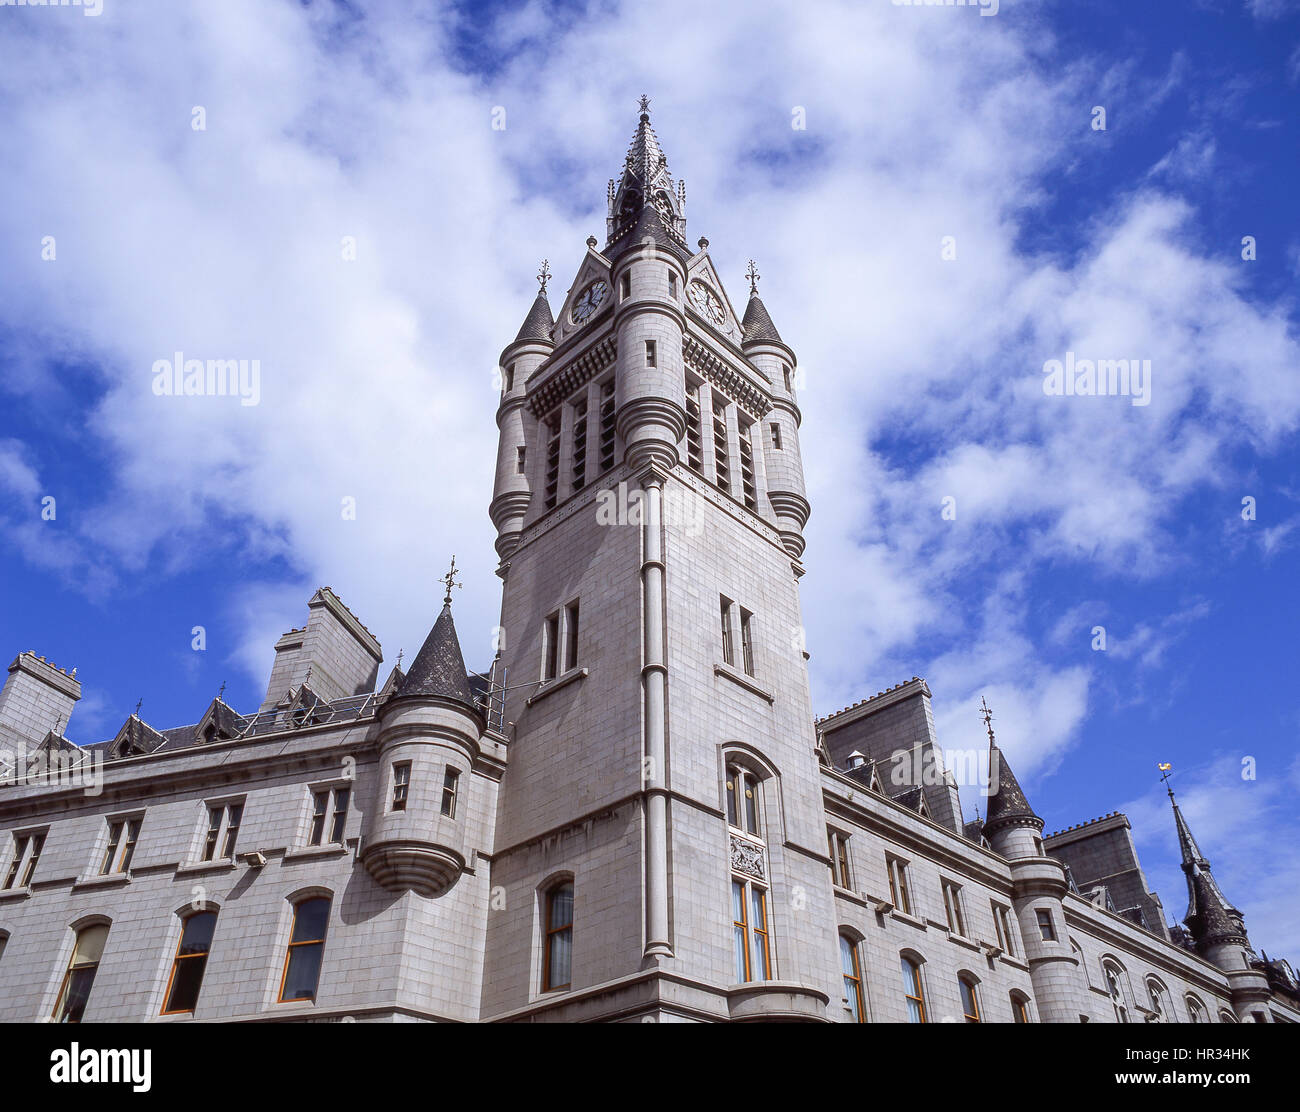 West Tower of the New Town House, Union Street, Aberdeen City, Scotland, United Kingdom - Stock Image